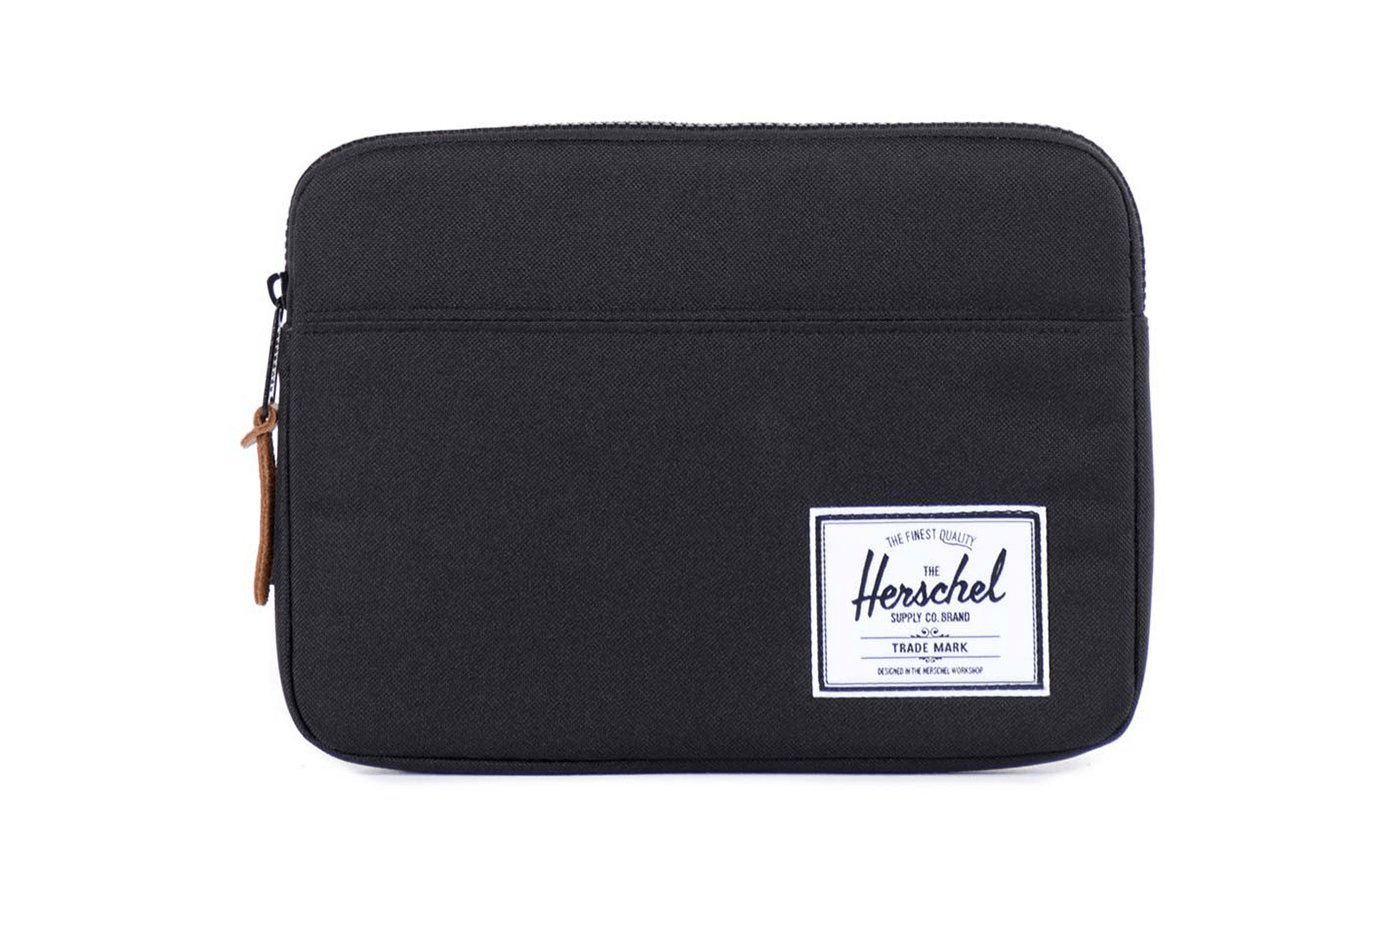 ANCHOR IPAD MINI ACCESSORIES HERSCHEL BLACK IPAD MINI